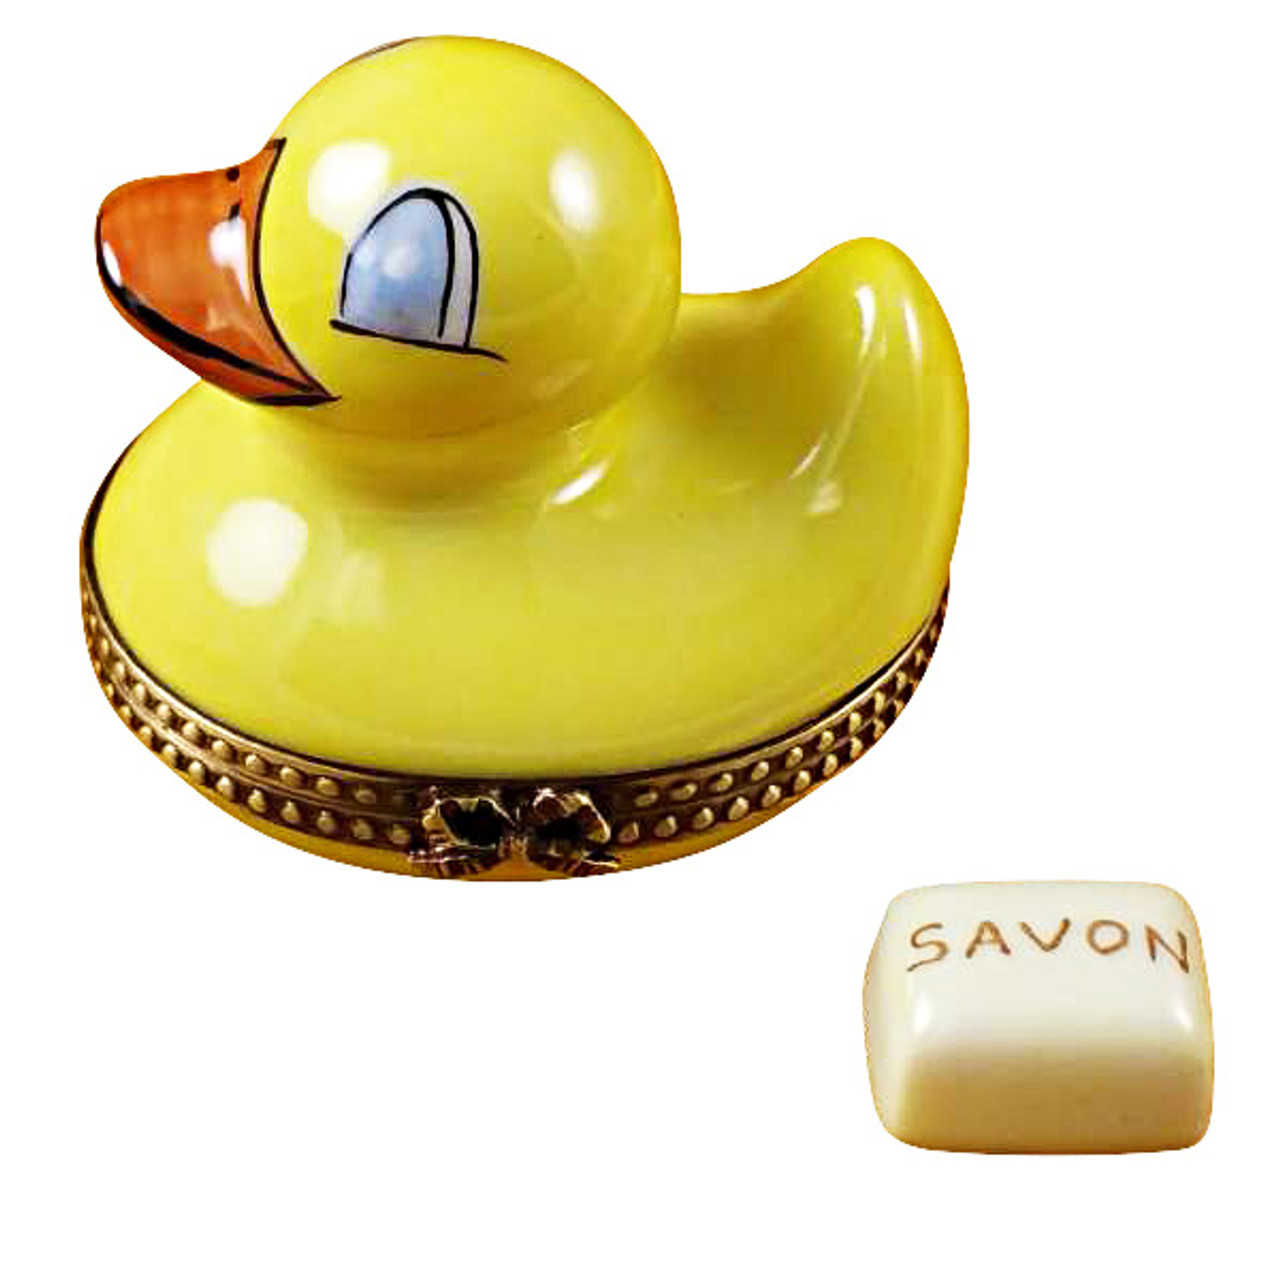 Limoges Imports Duck W/ Soap Limoges Box